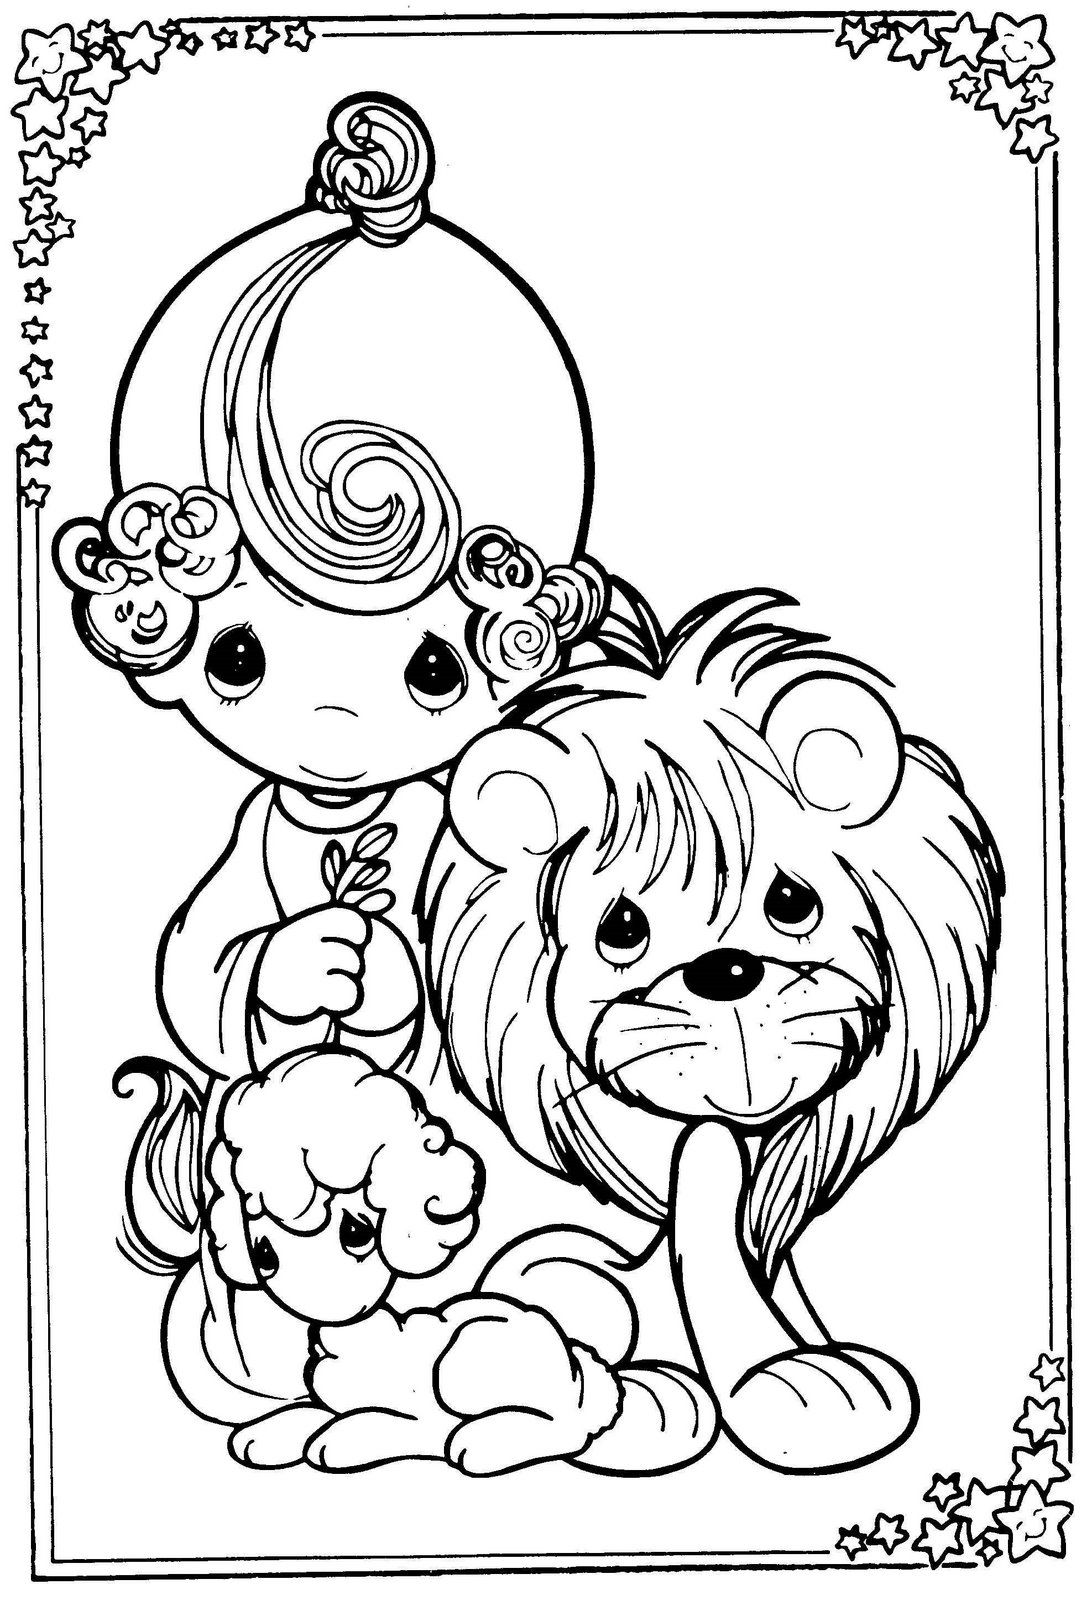 Jesus Christ, lamb and lion | Precious moments coloring ...